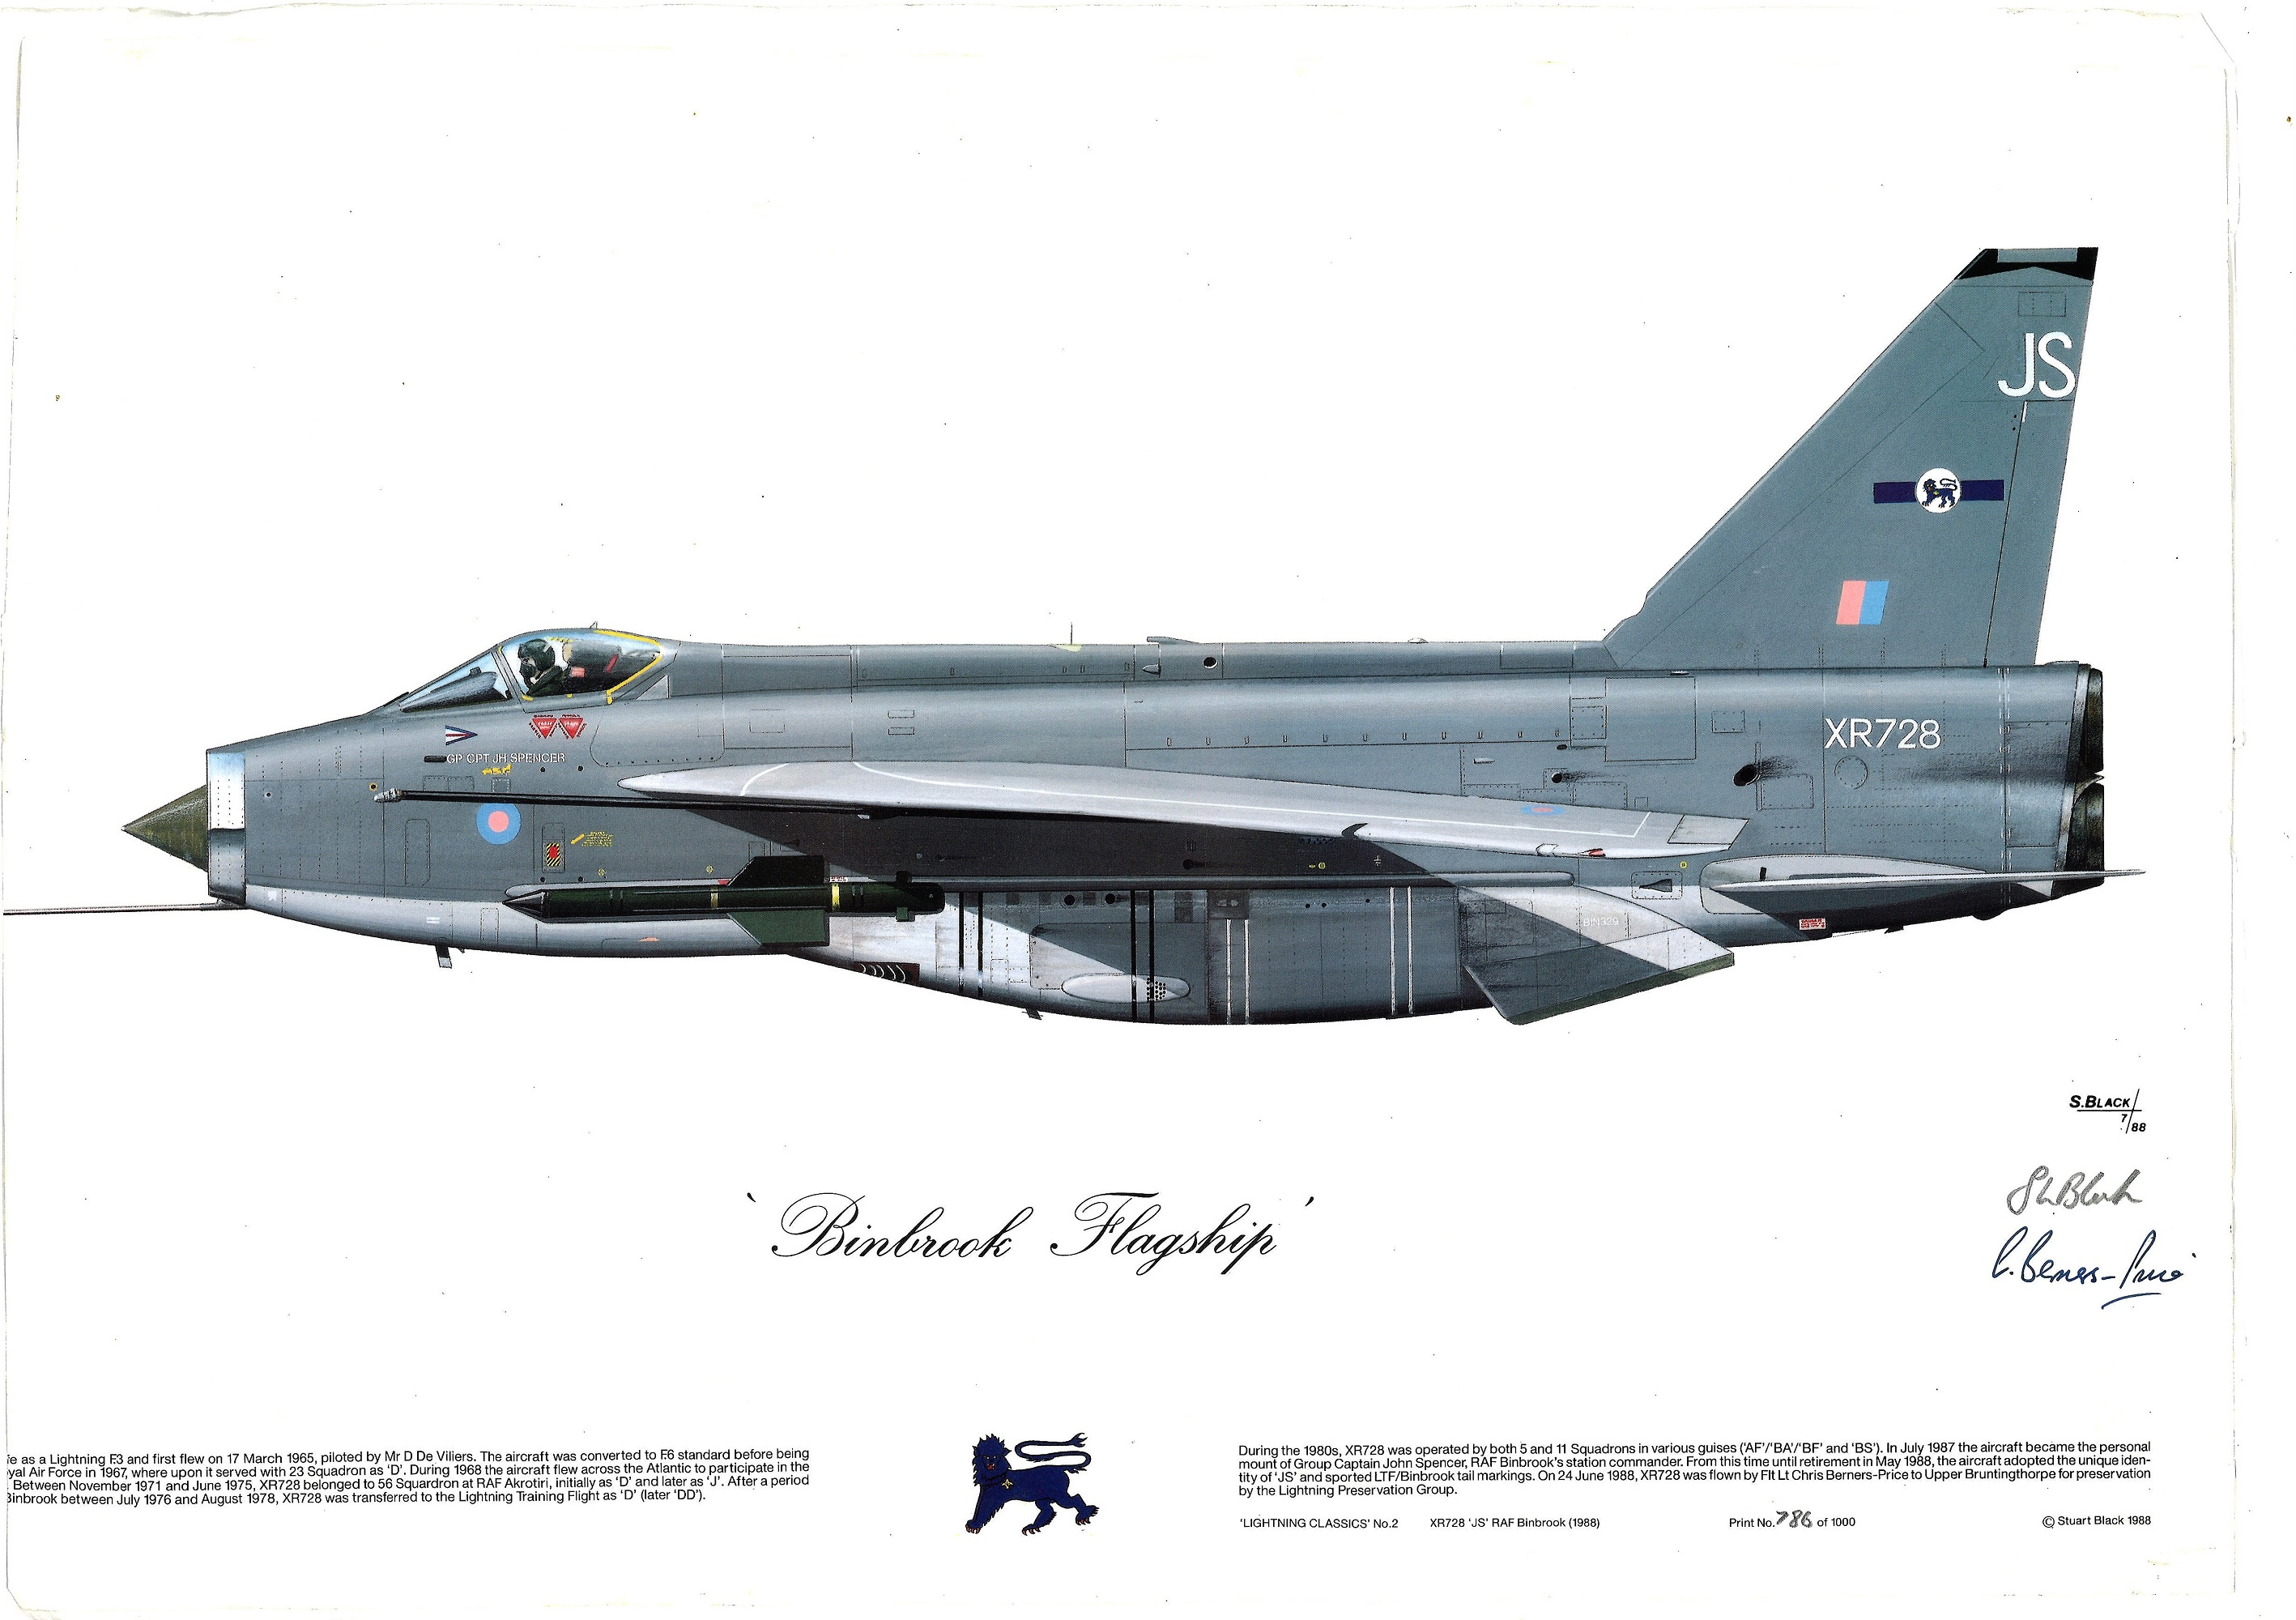 RAF Binbrook print approx 16 x 12 inches fixed thicker paper to Binbrook Flagship XR 728 EE